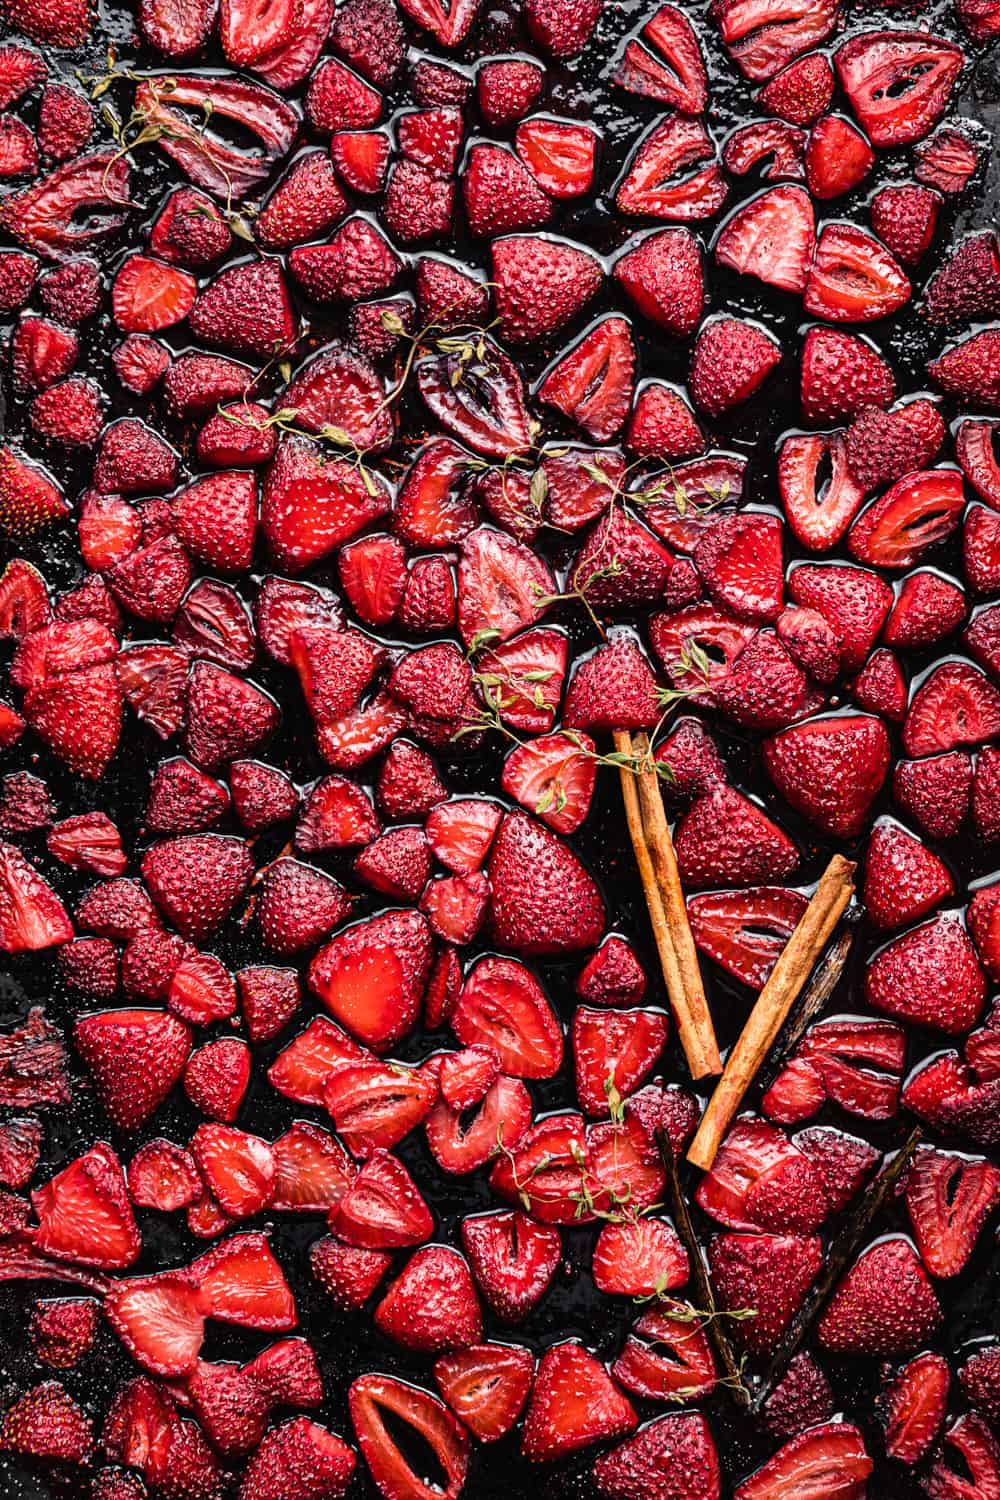 roasted strawberries just out of the oven on a baking sheet with cinnamon, vanilla beans and thyme; overhead shot.